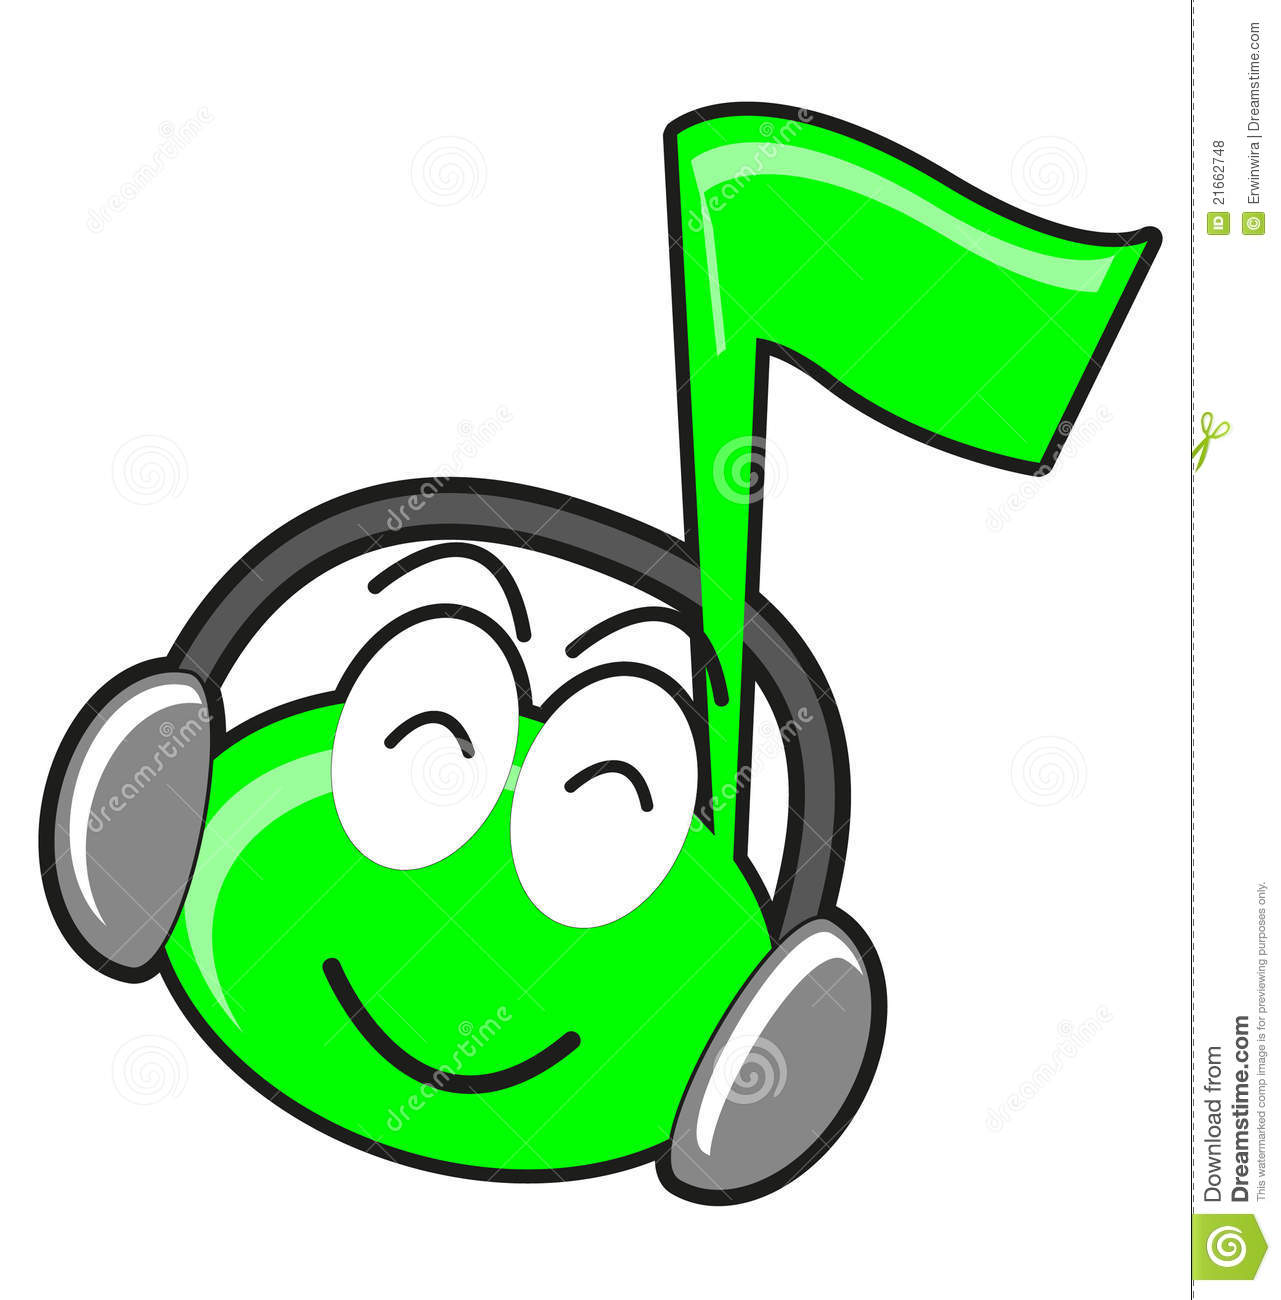 Illustration Of Cartoon Music Tone Stock Images - Image: 21662614